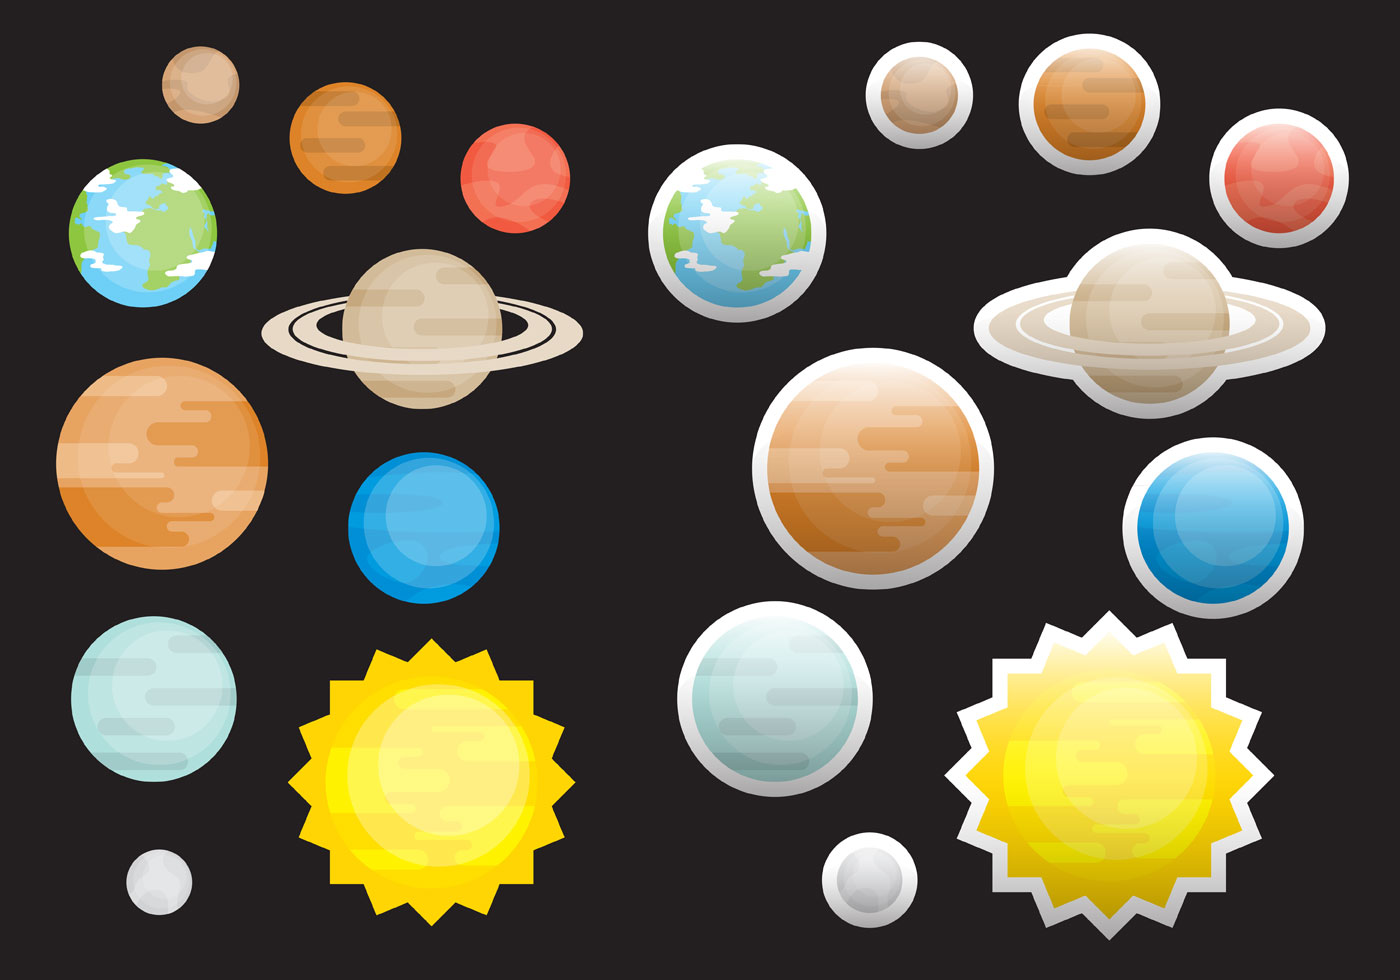 Flat Planet Vectors - Download Free Vector Art, Stock ...